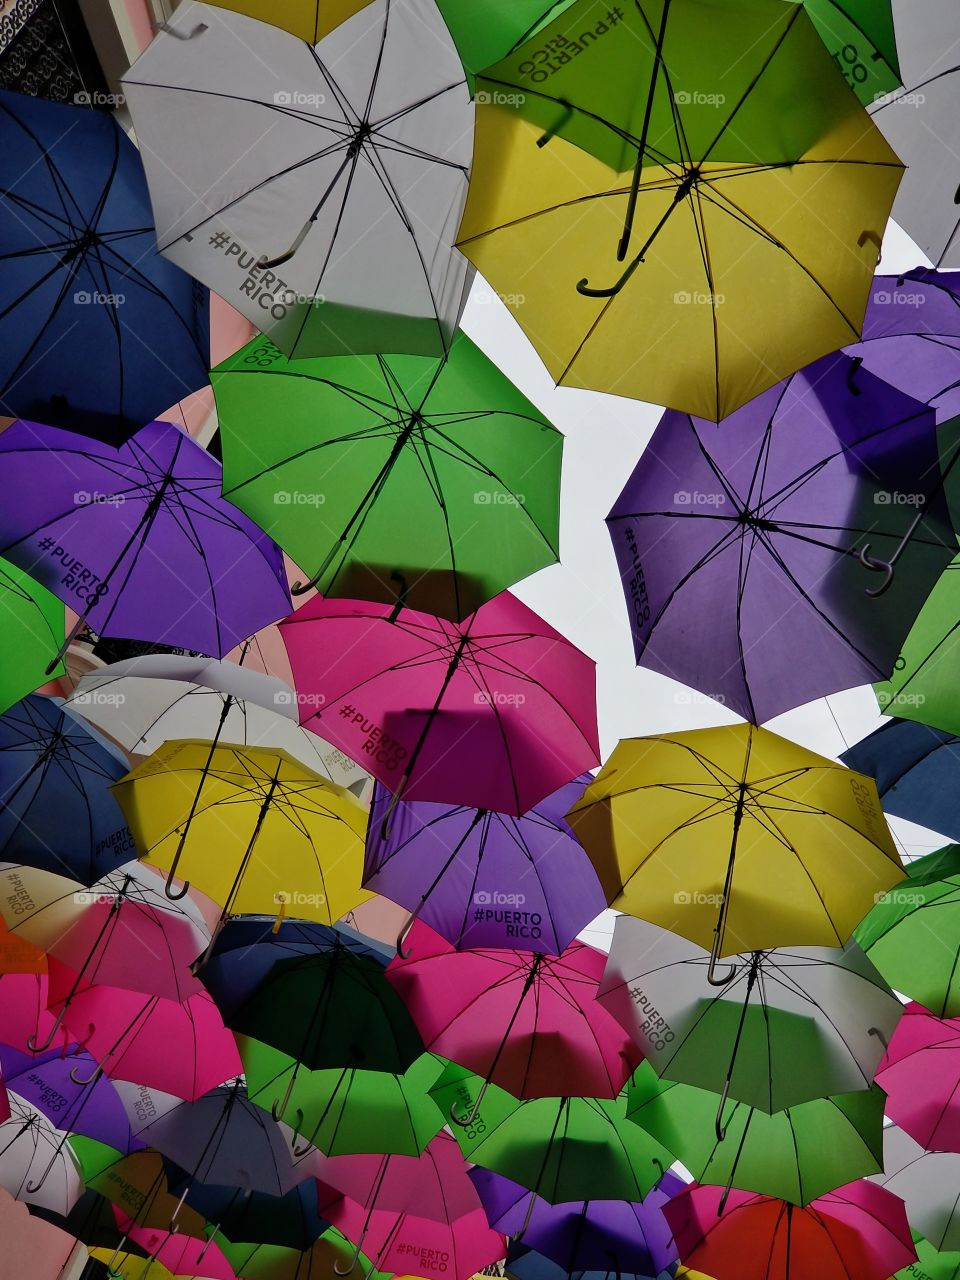 Puerto Rico Strong..☂🌈 Will have umbrellas up again❤